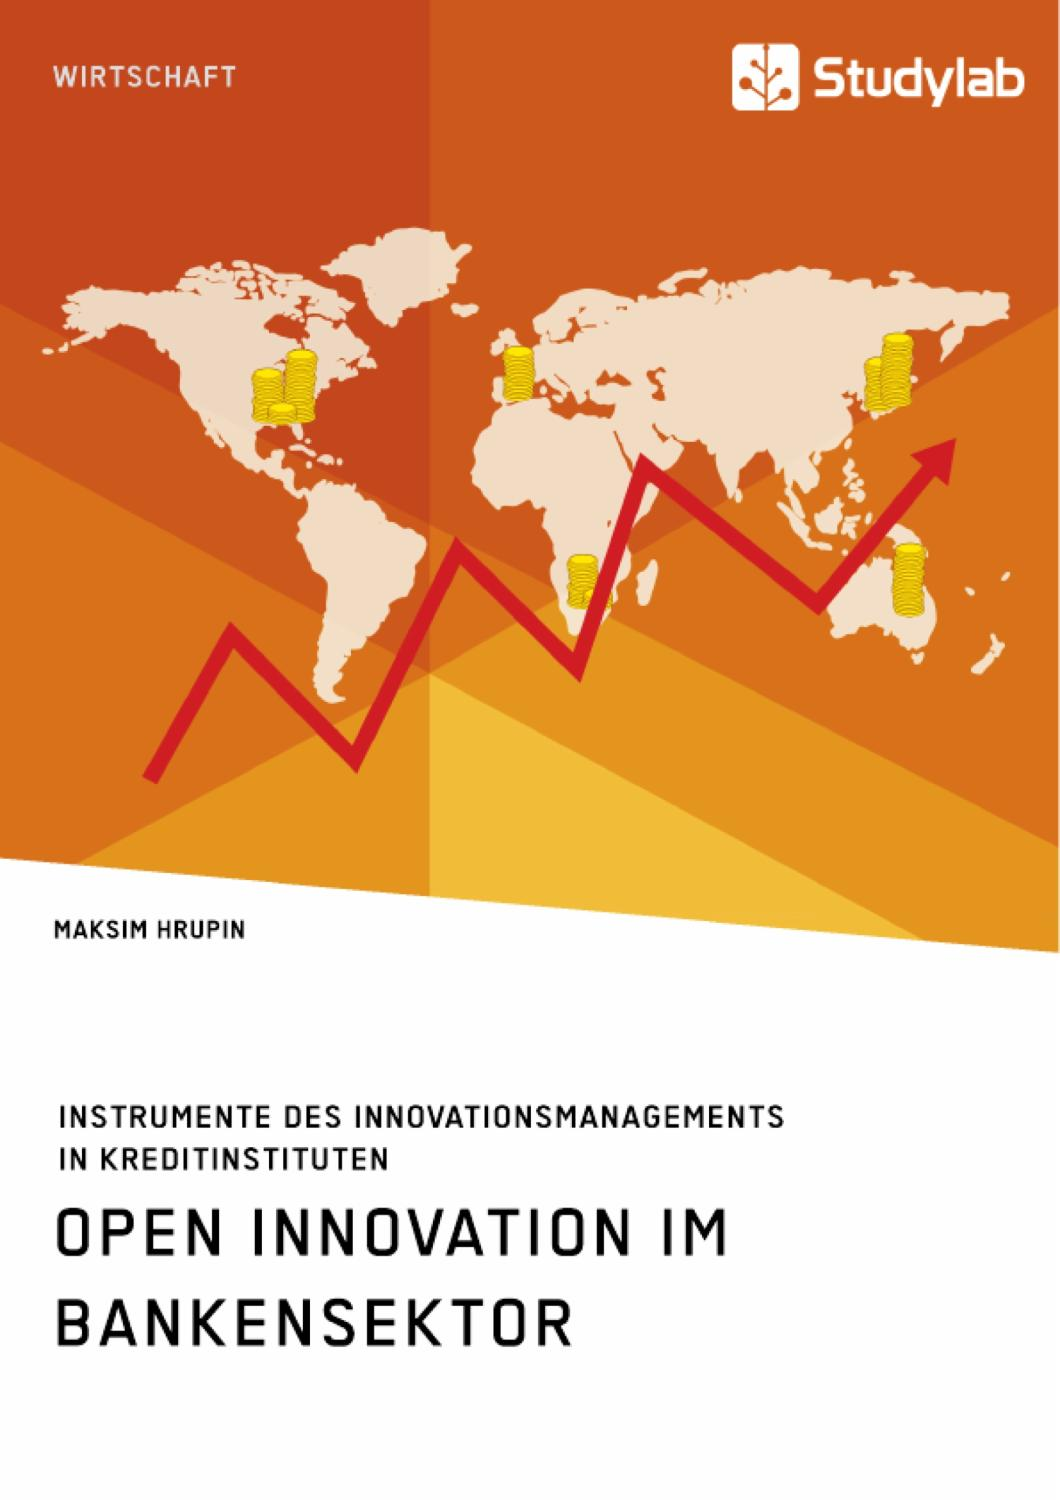 Open Innovation im Bankensektor. Instrumente des Innovationsmanagements in Kreditinstituten - Maksim Hrupin